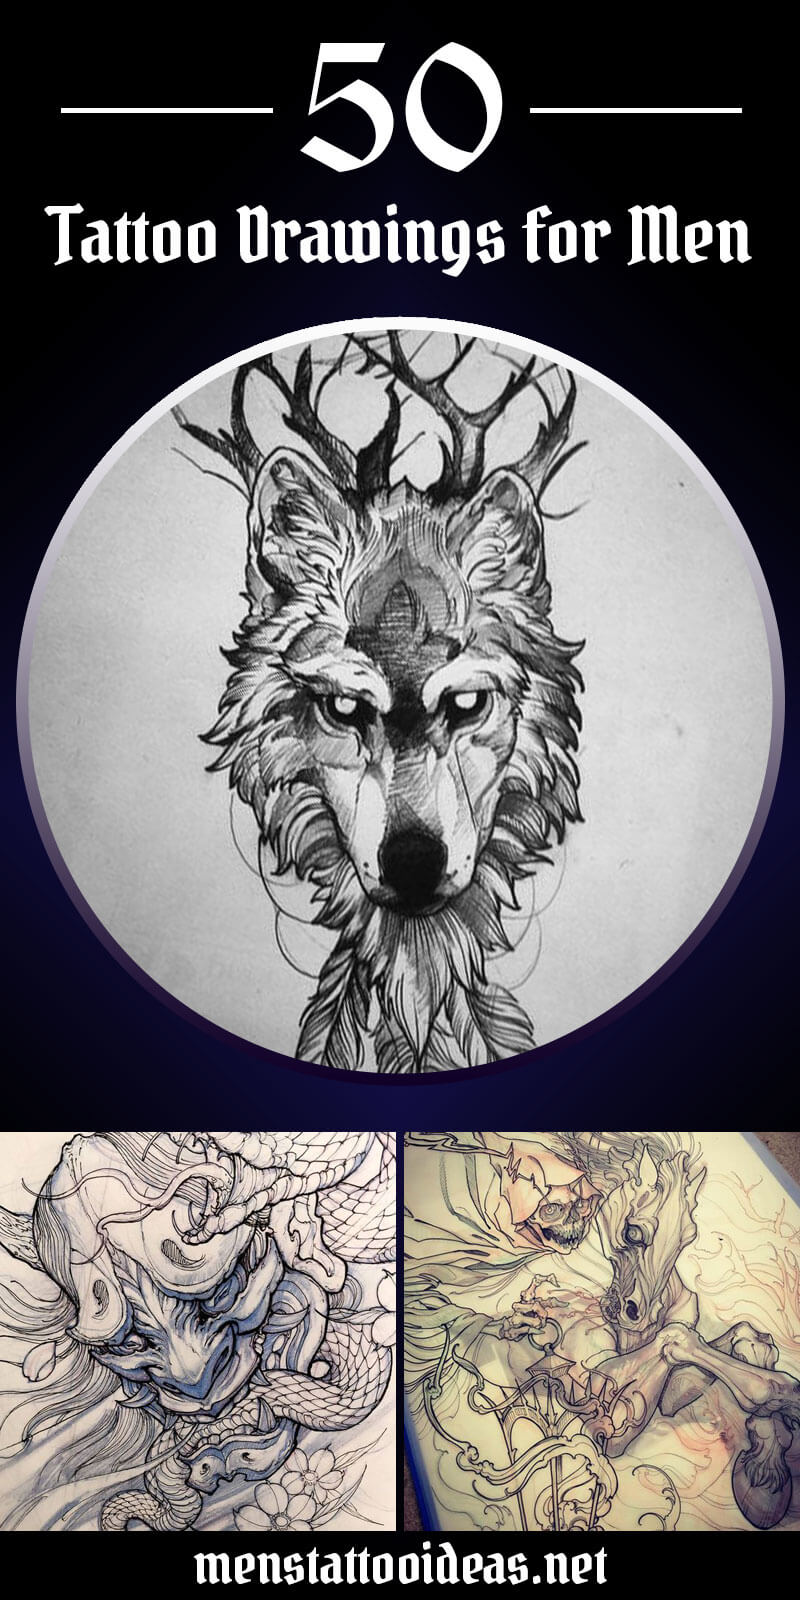 tattoo-drawings-for-men